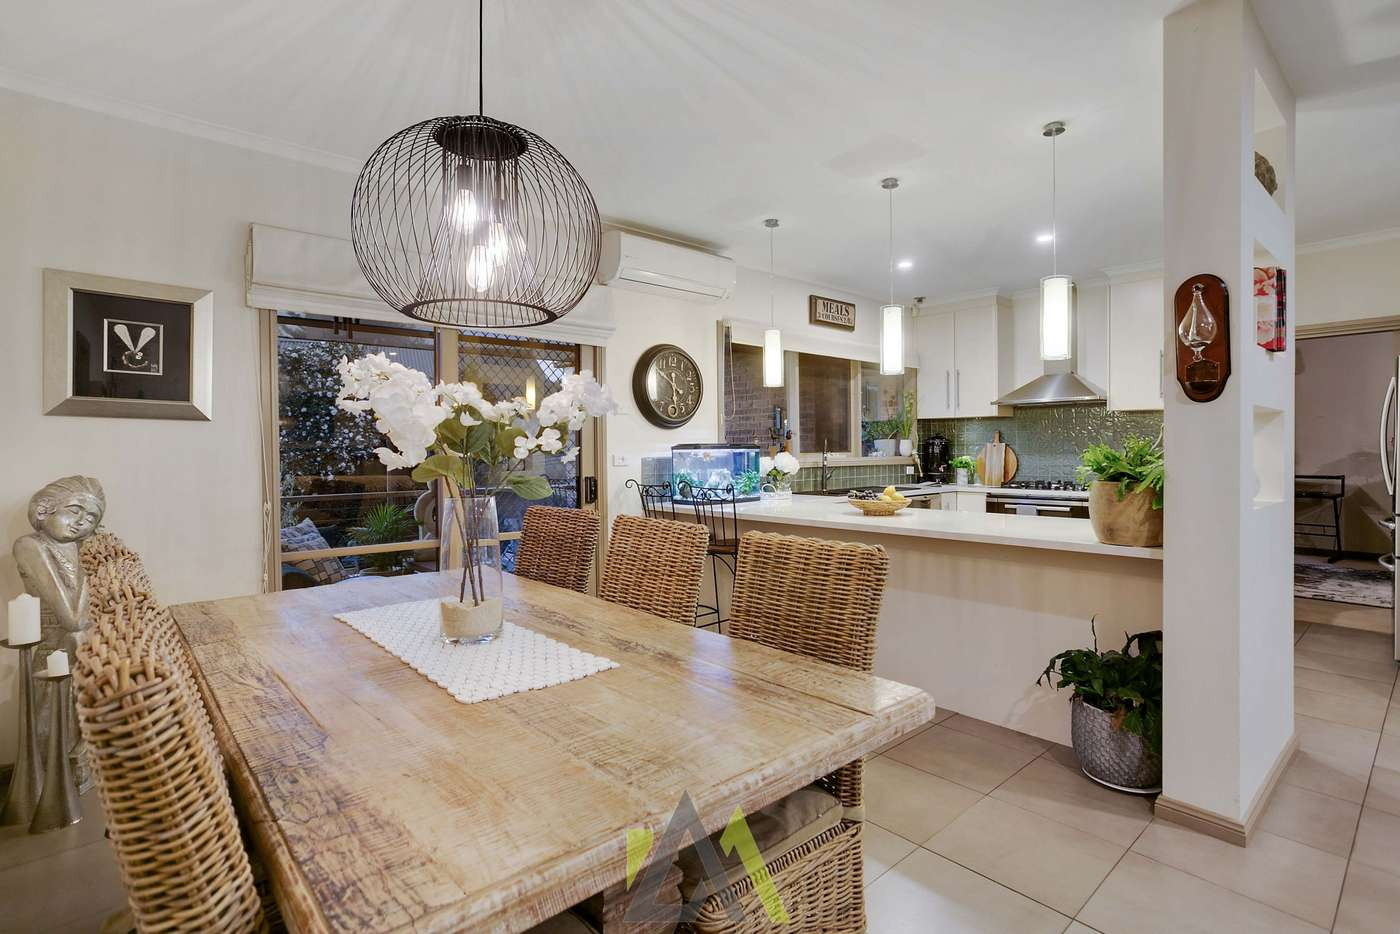 Fifth view of Homely house listing, 14 Mathew Court, Langwarrin VIC 3910